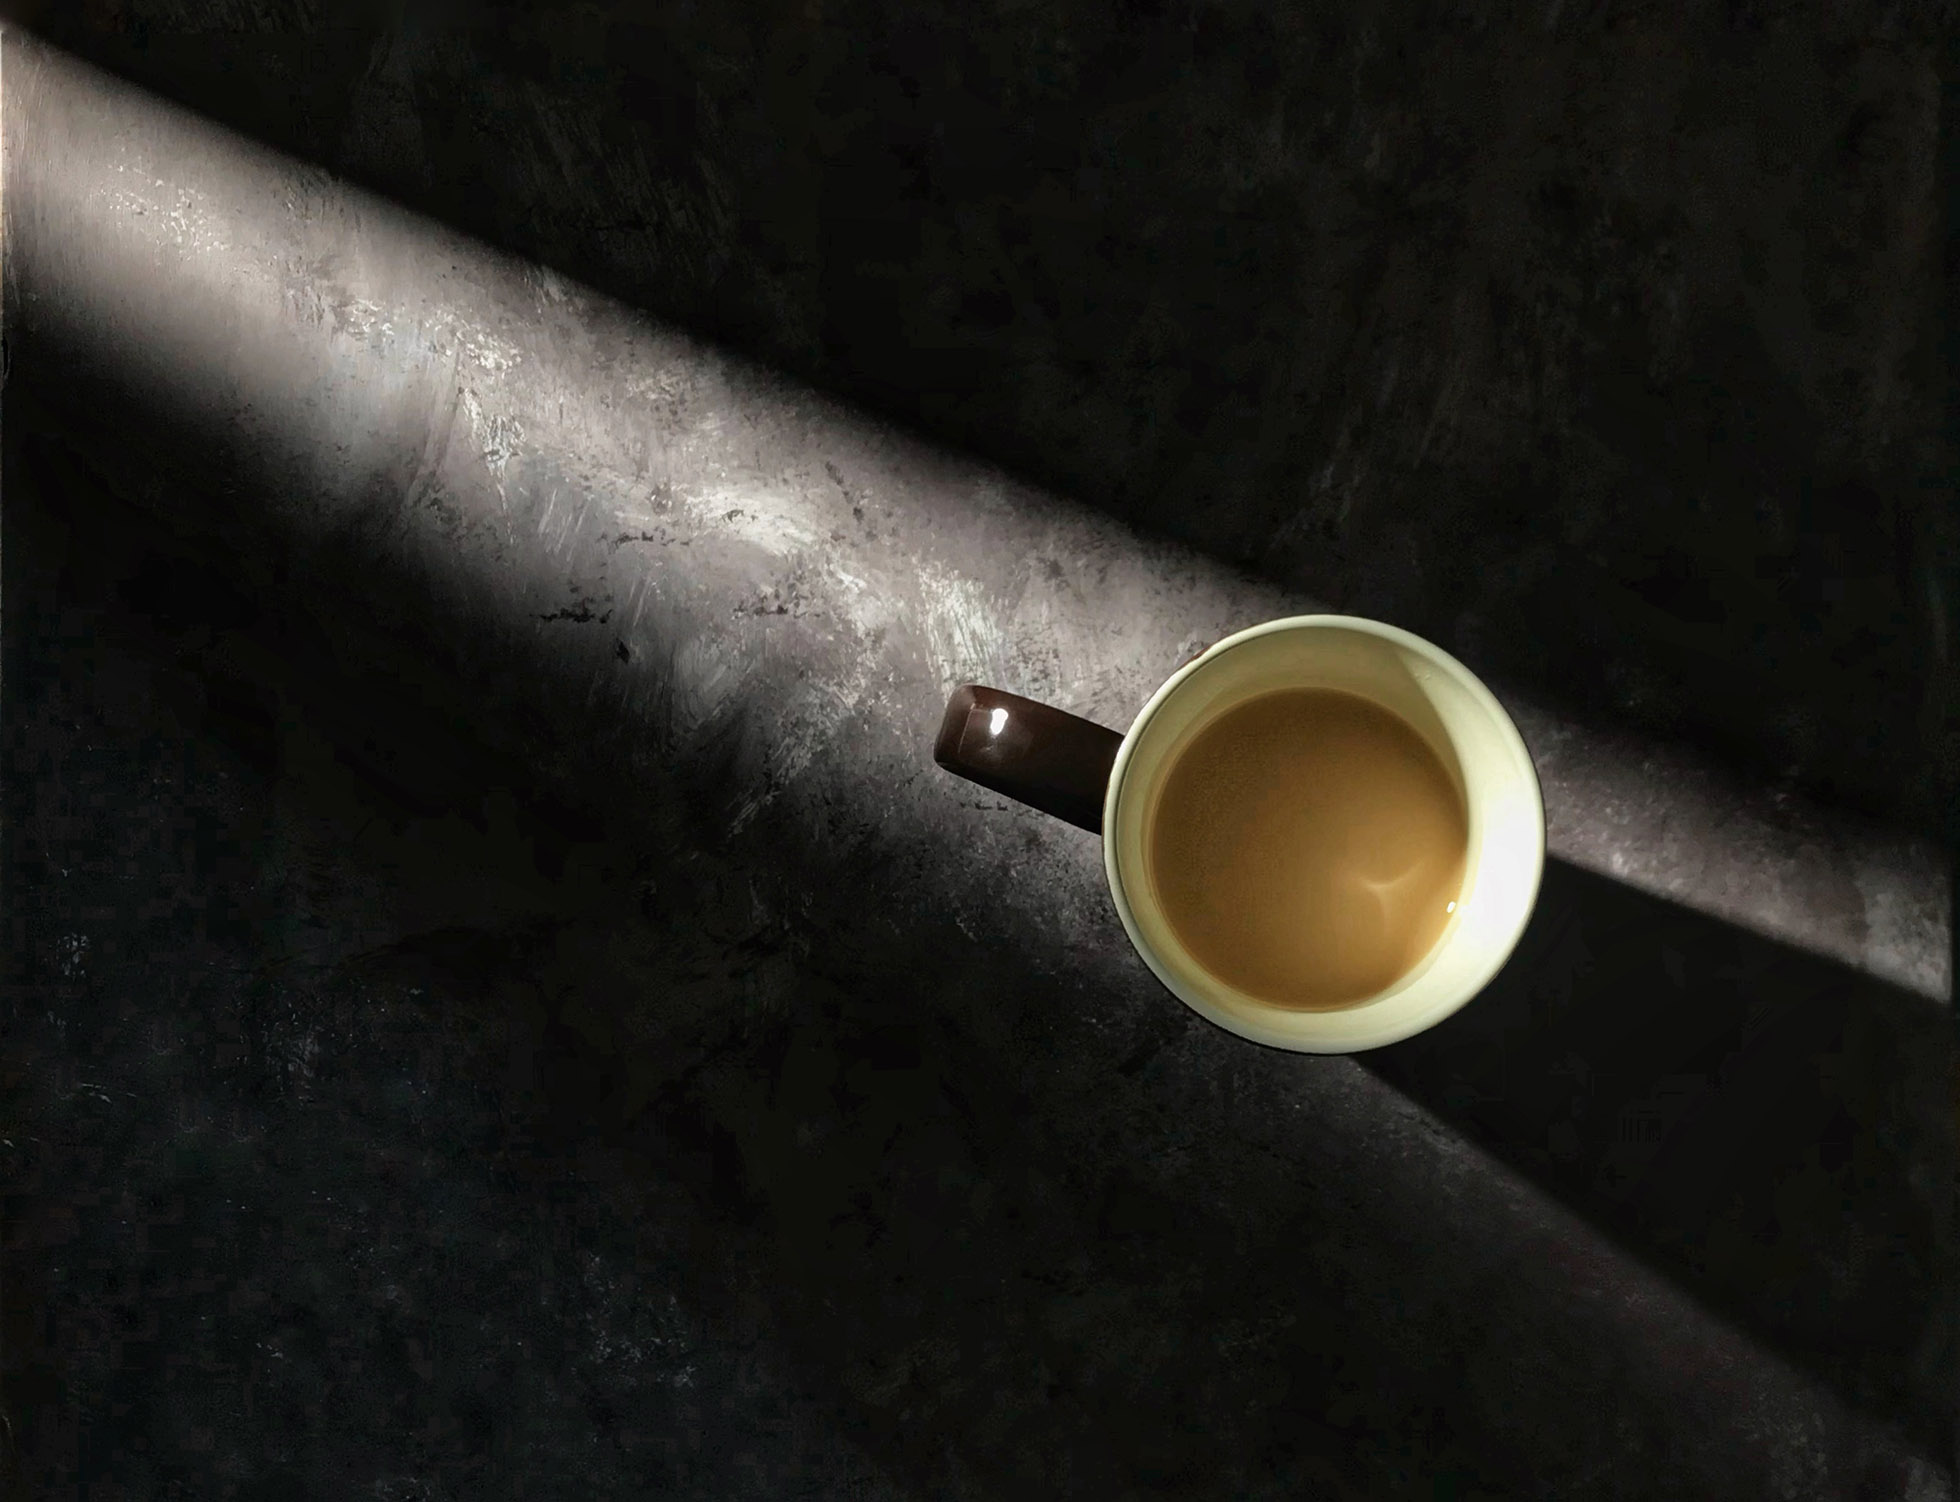 Cup of coffee in morning light.